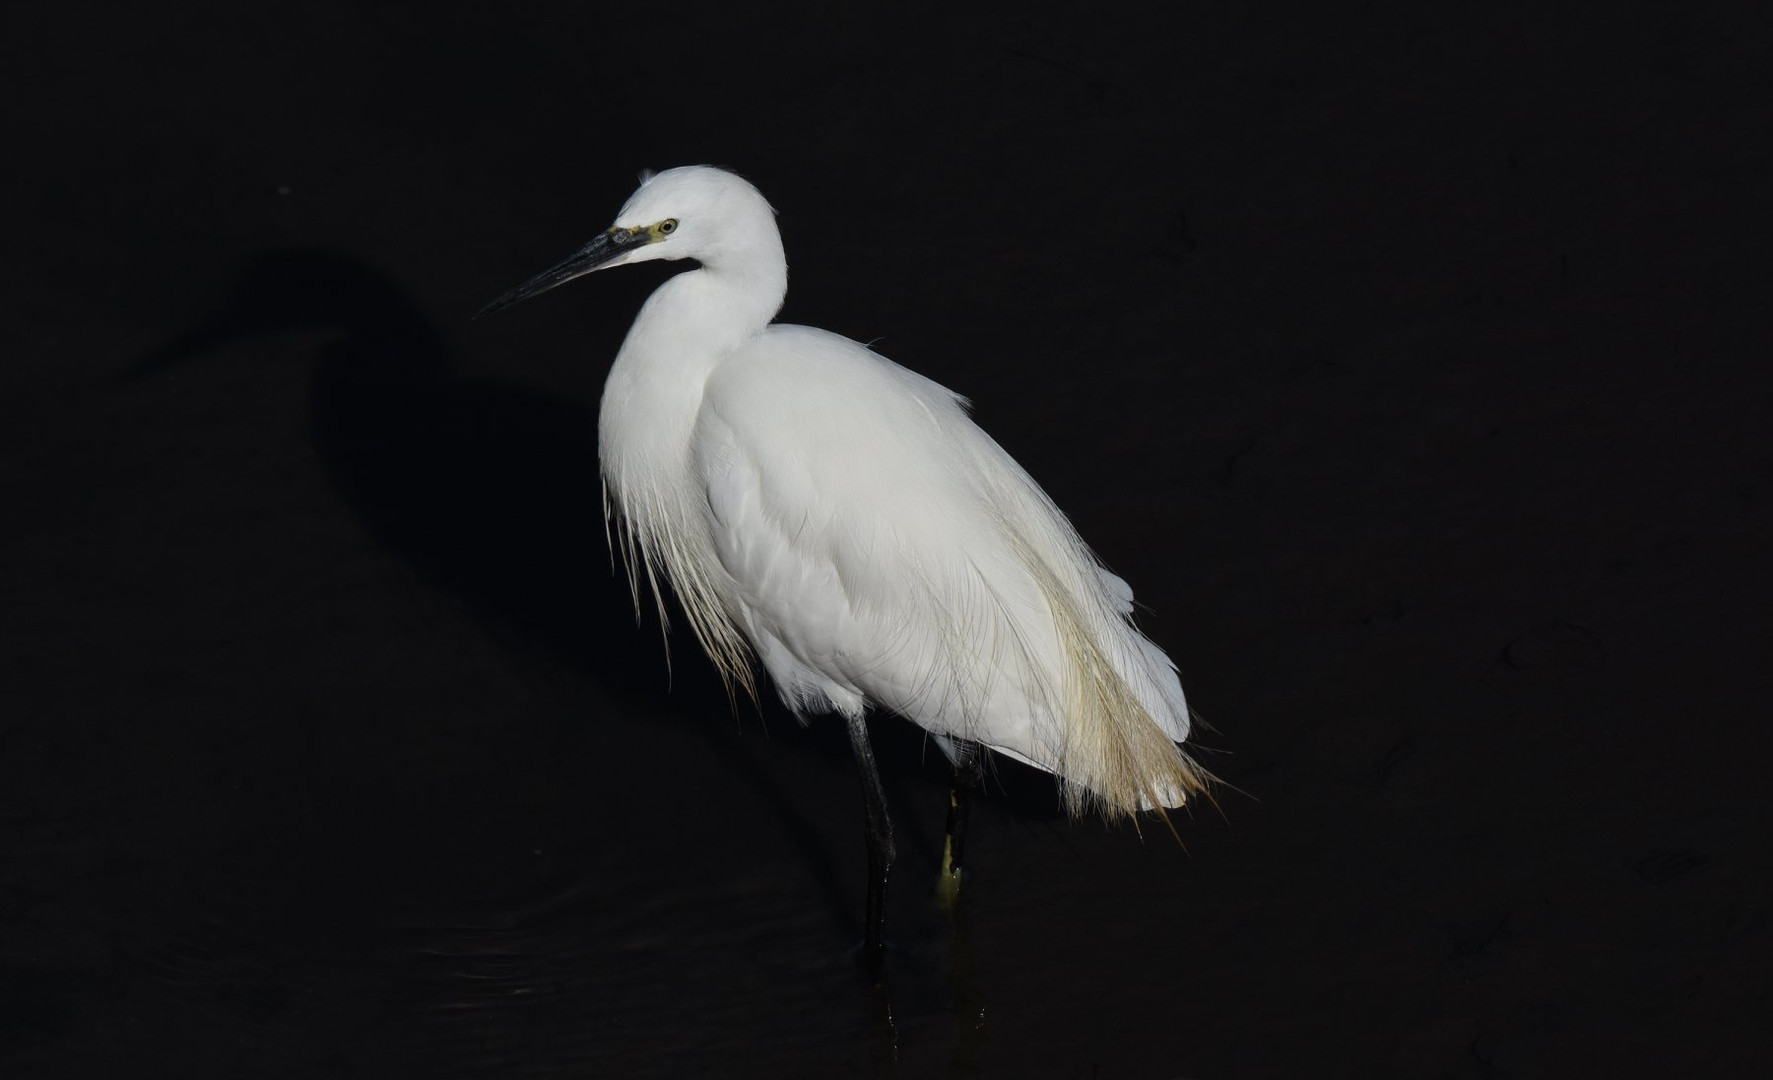 Egret in the dark